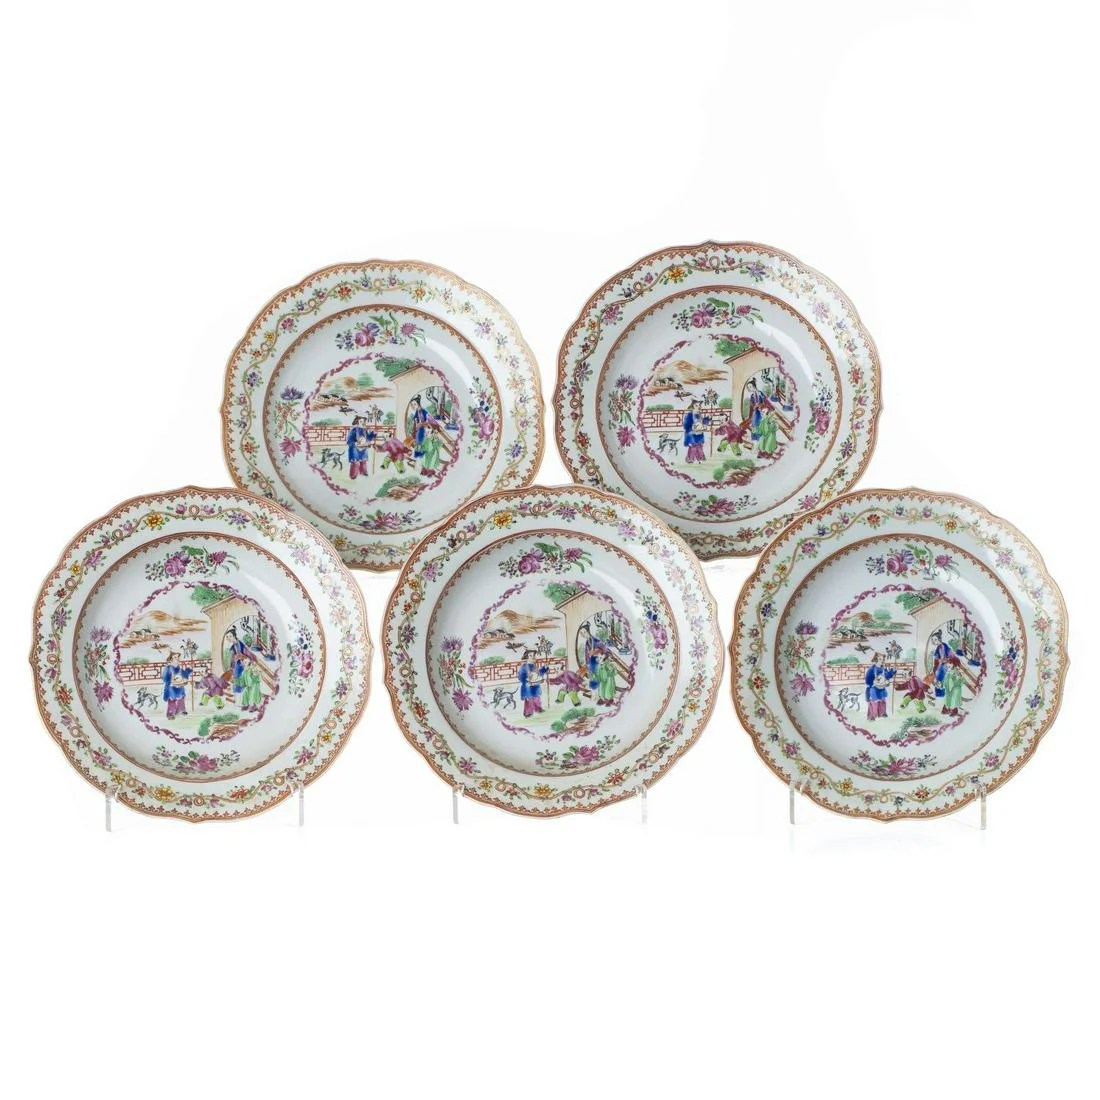 Five Mandarin soup plates in Chinese porcelain,